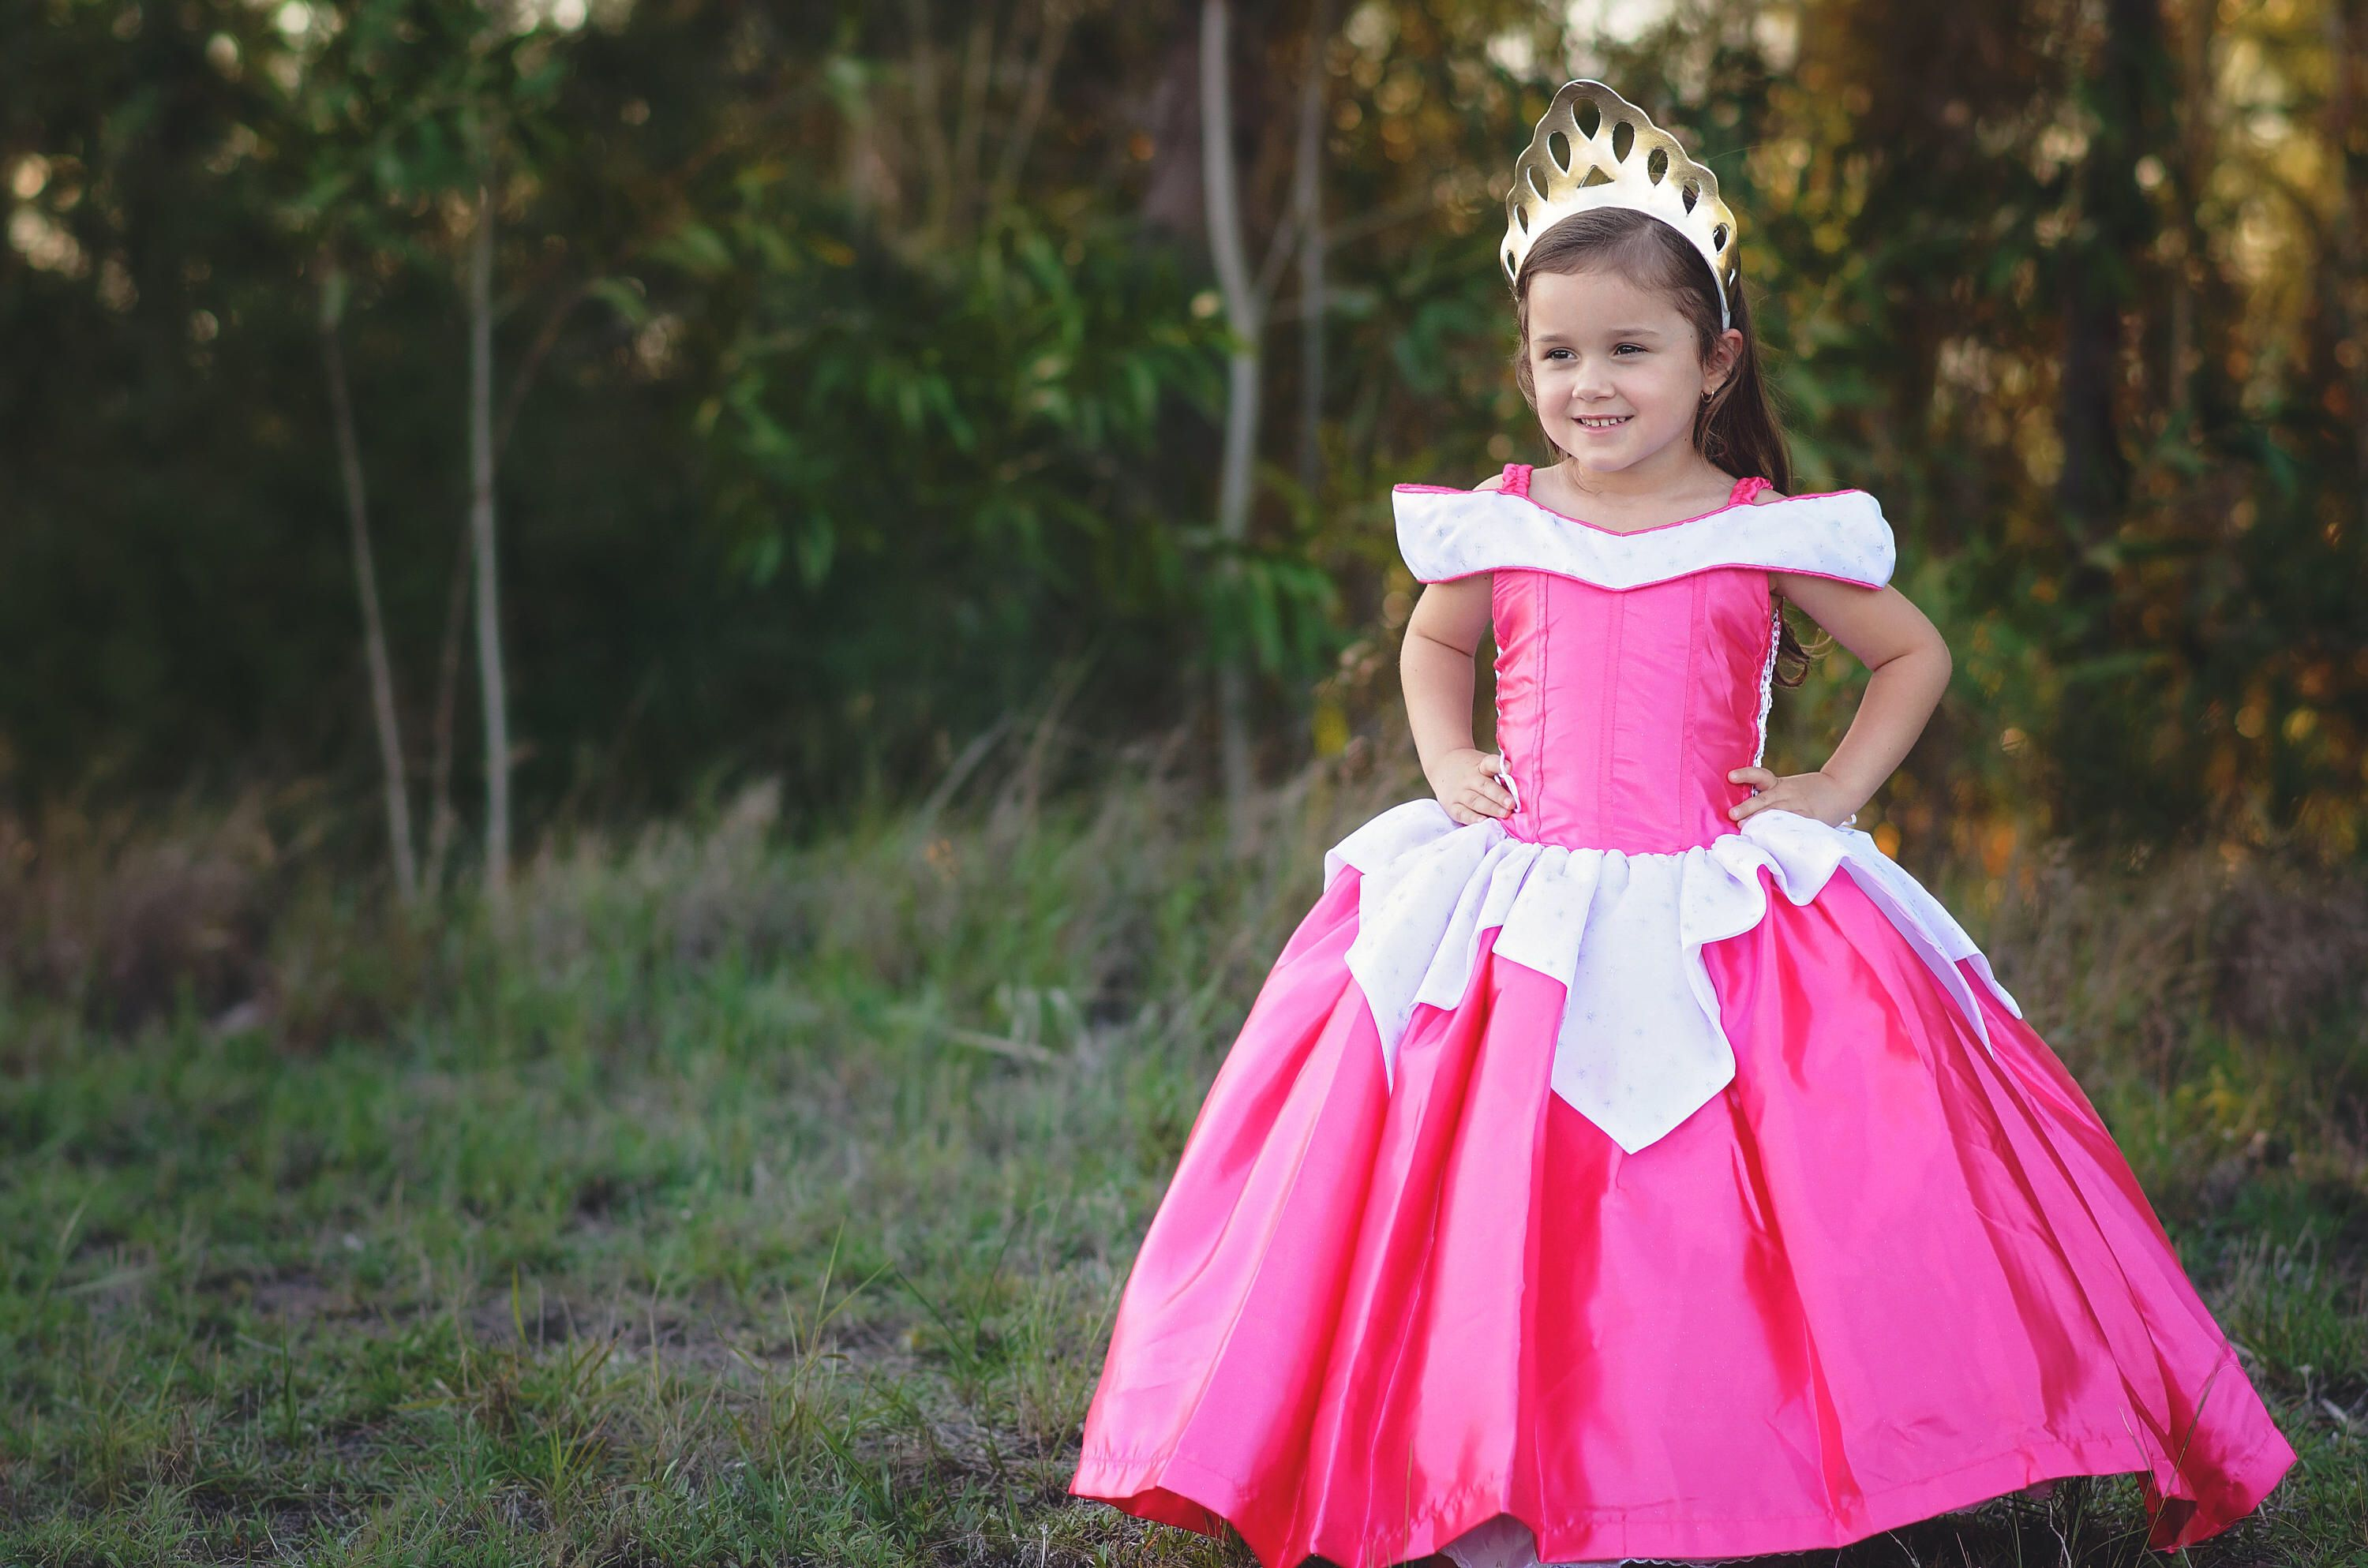 Princess Aurora Dress / Disney Sleeping Beauty Inspired Costume / Ball gown style for toddler child girl baby by MagicalWishBoutique on Etsy ...  sc 1 st  Pinterest & Sleeping Beauty Dress / Inspired Disney Princess Dress Aurora ...